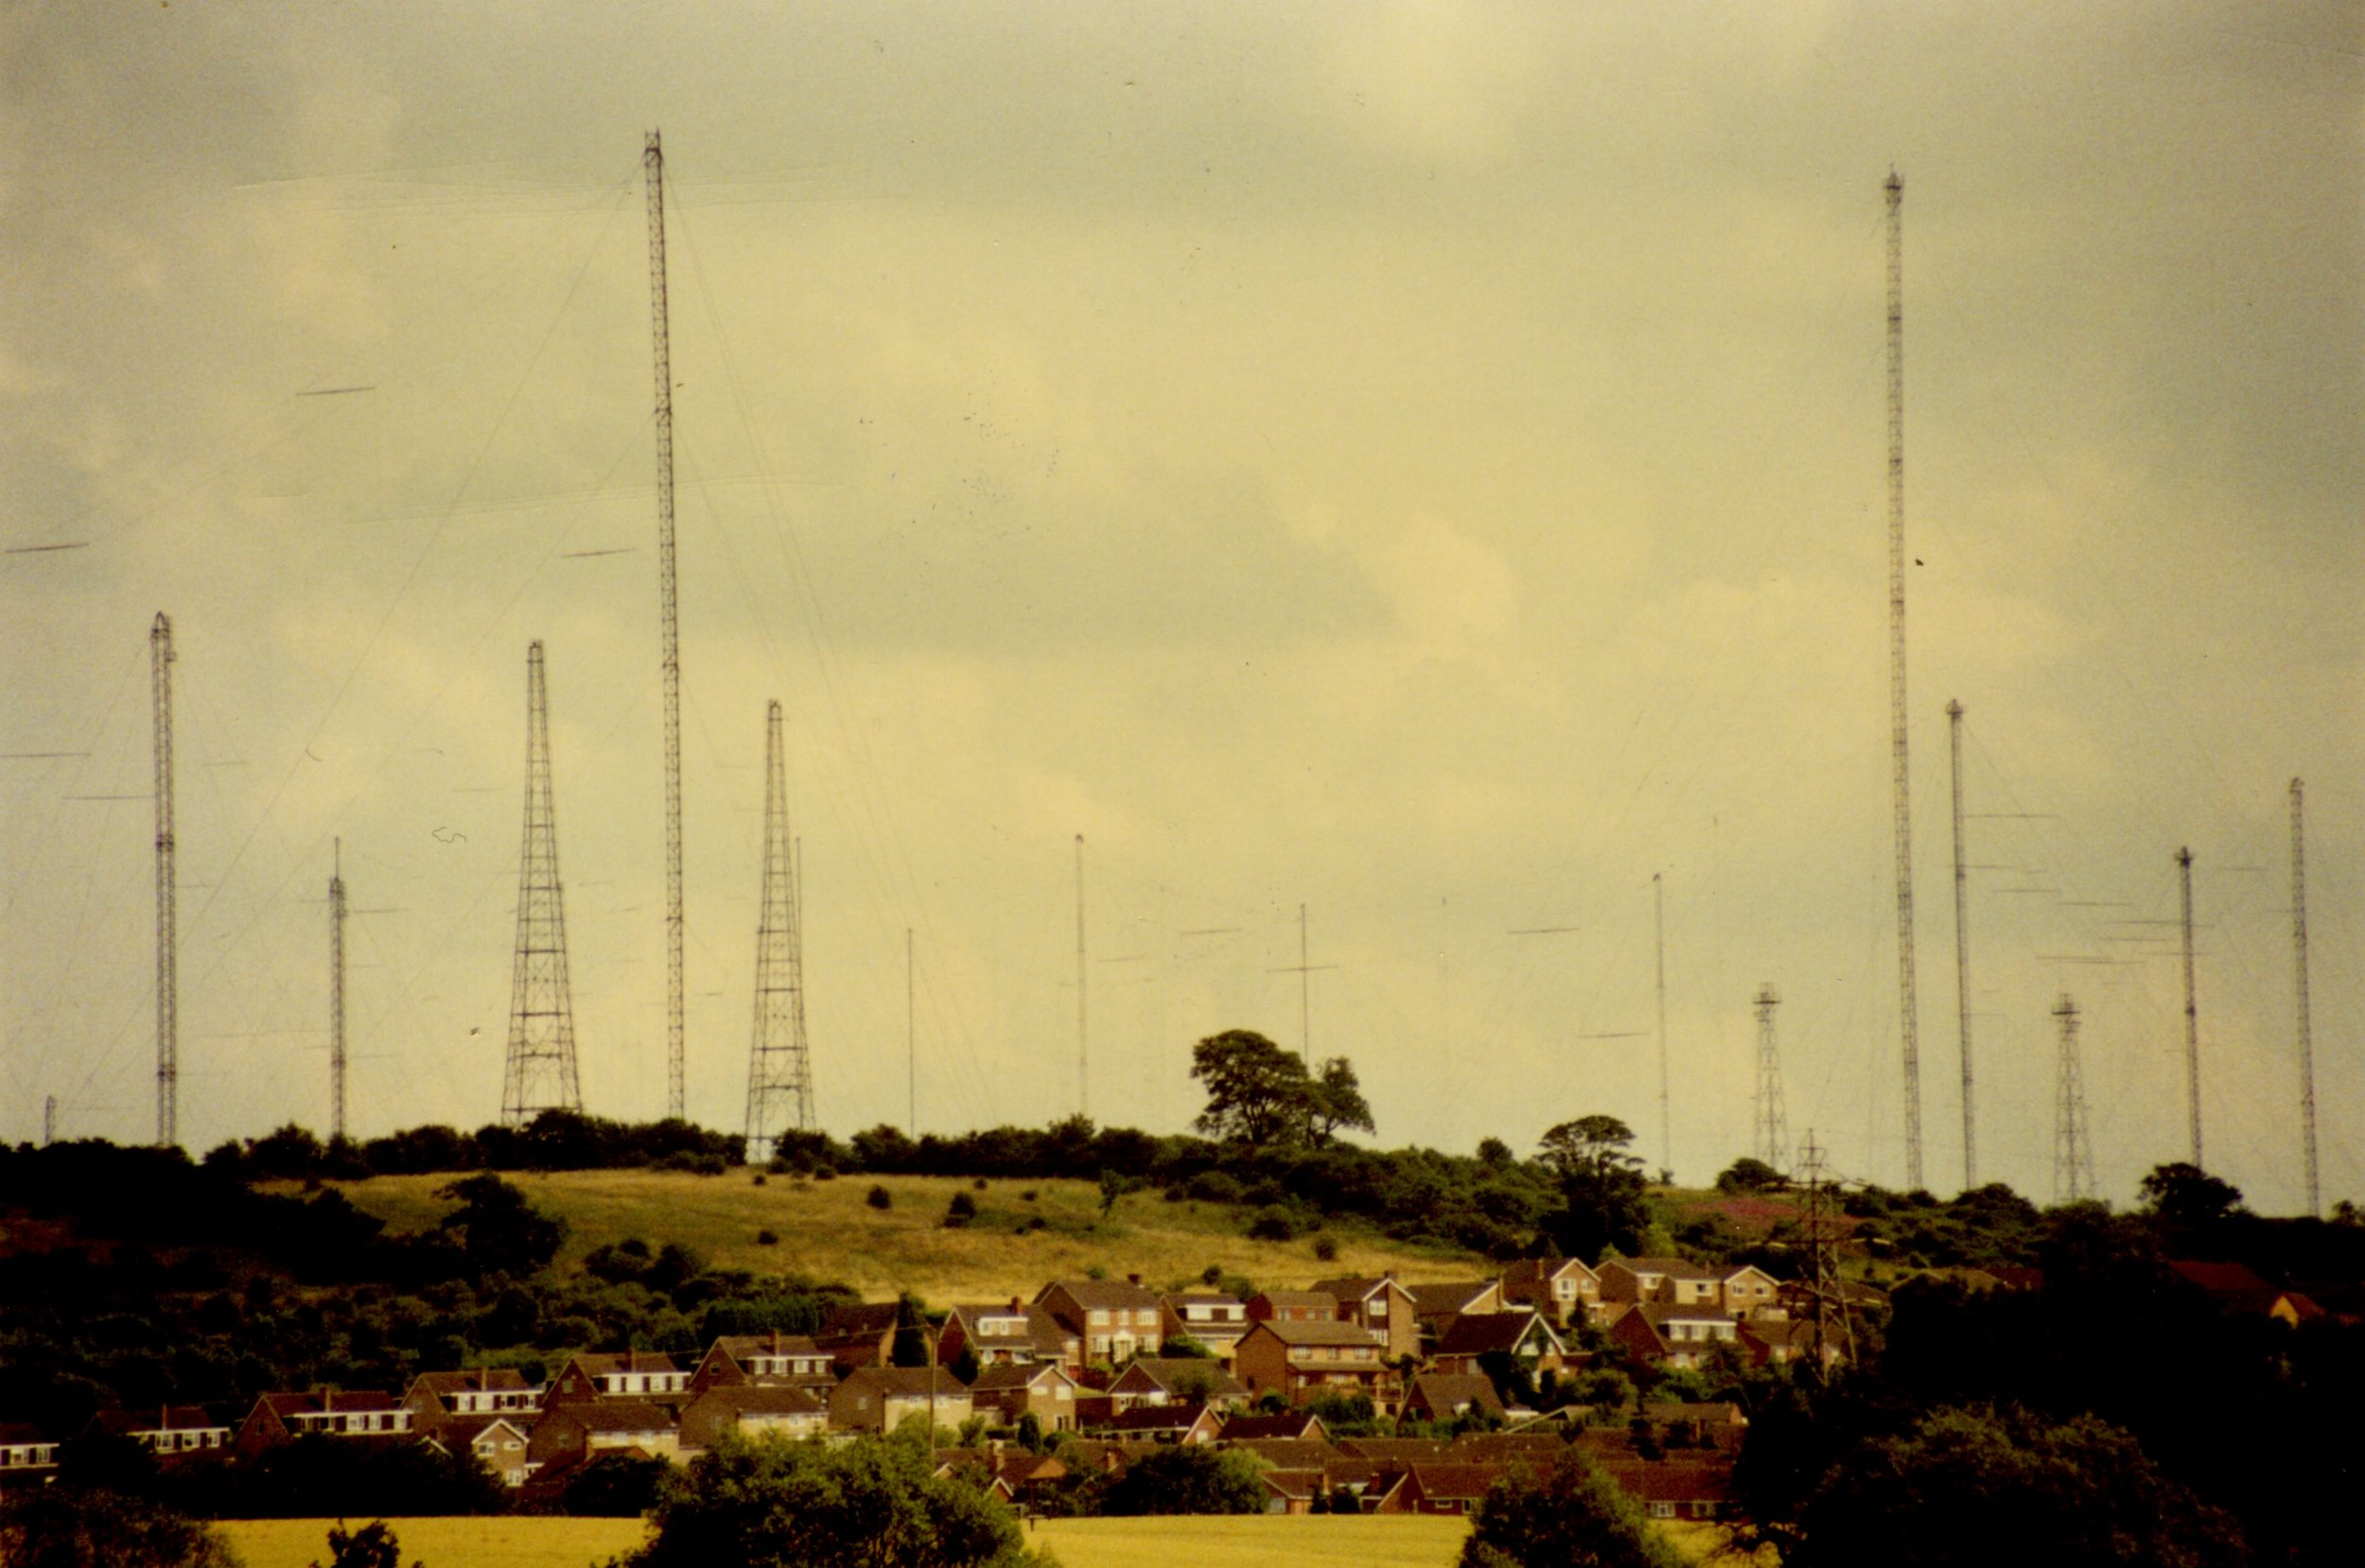 A photograph of a landscape featuring over 10 aerial masts and associated posts. The masts sit a top a hill with trees and bushes. At the bottom of the hill is a cluster of houses forming an estate.